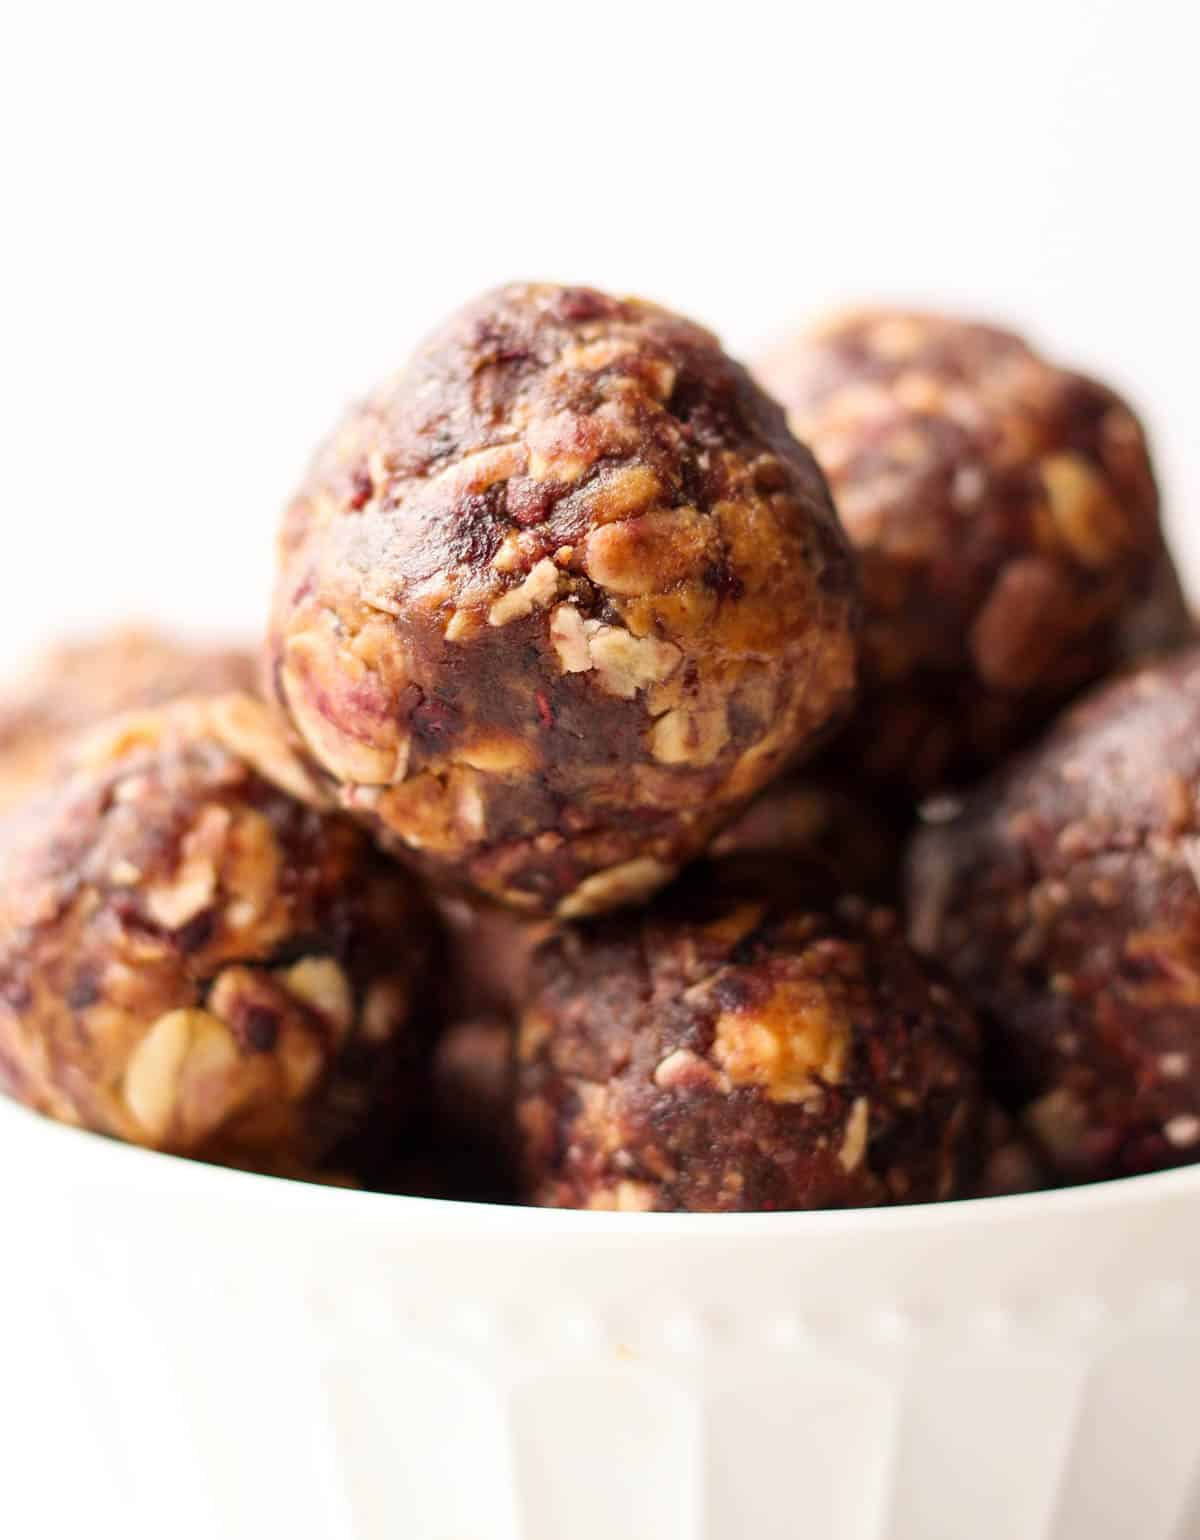 Vegan & gluten free 4 ingredient Peanut Butter & Jelly Energy Balls take your favorite childhood combo & turns it into a healthy & easy on-the-go snack! - Eat the Gains